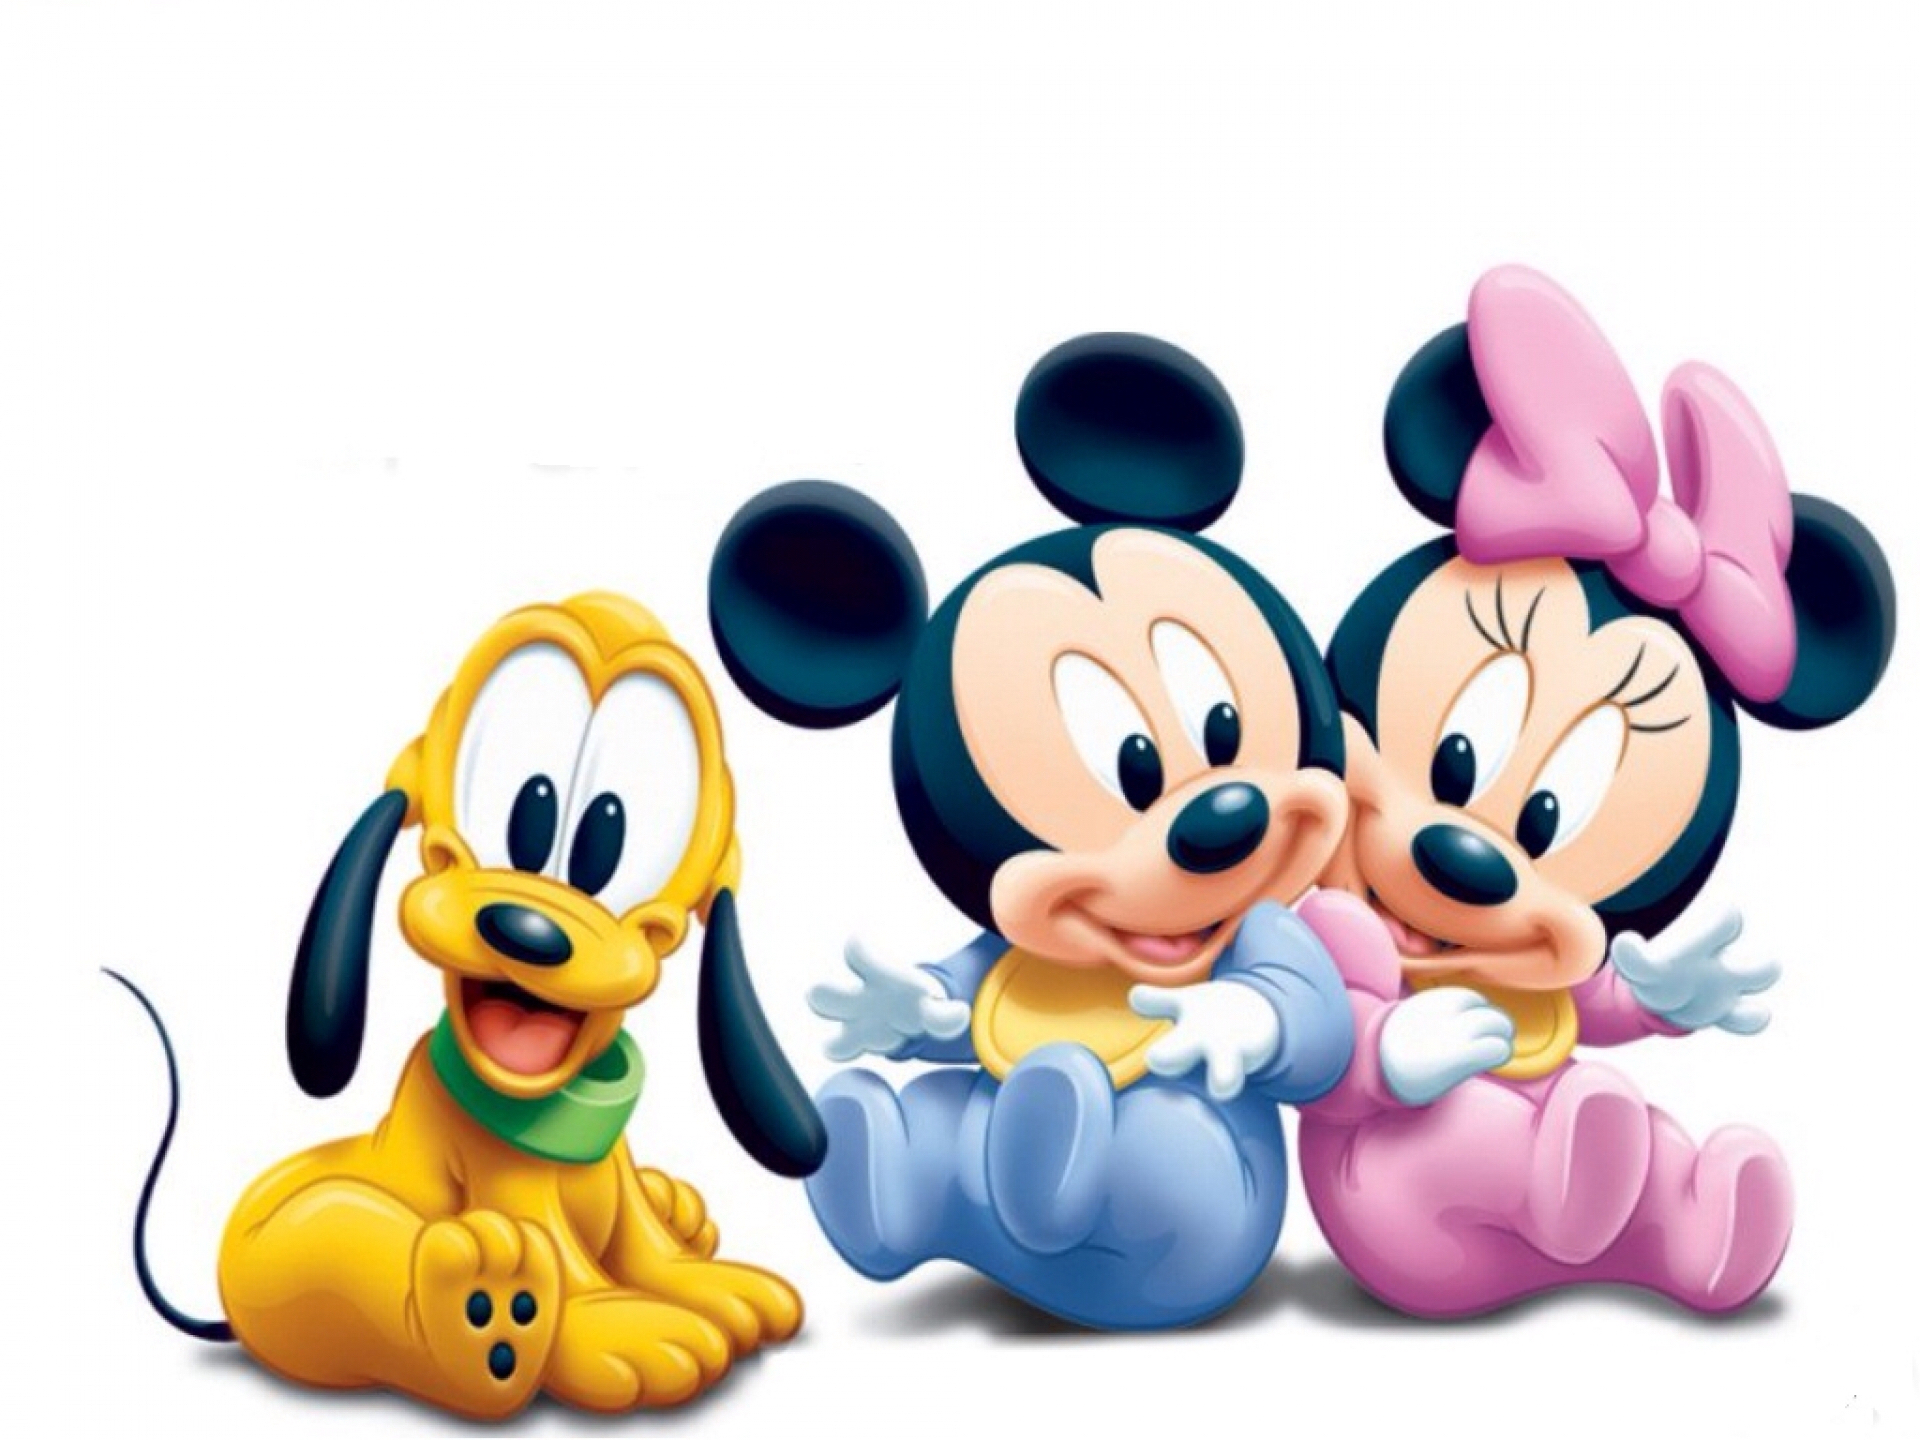 Image-from-http-images-clipartpanda-com-baby-mickey-mouse-pictures-and-pictures-dedicated-si-wallpaper-wp3407299